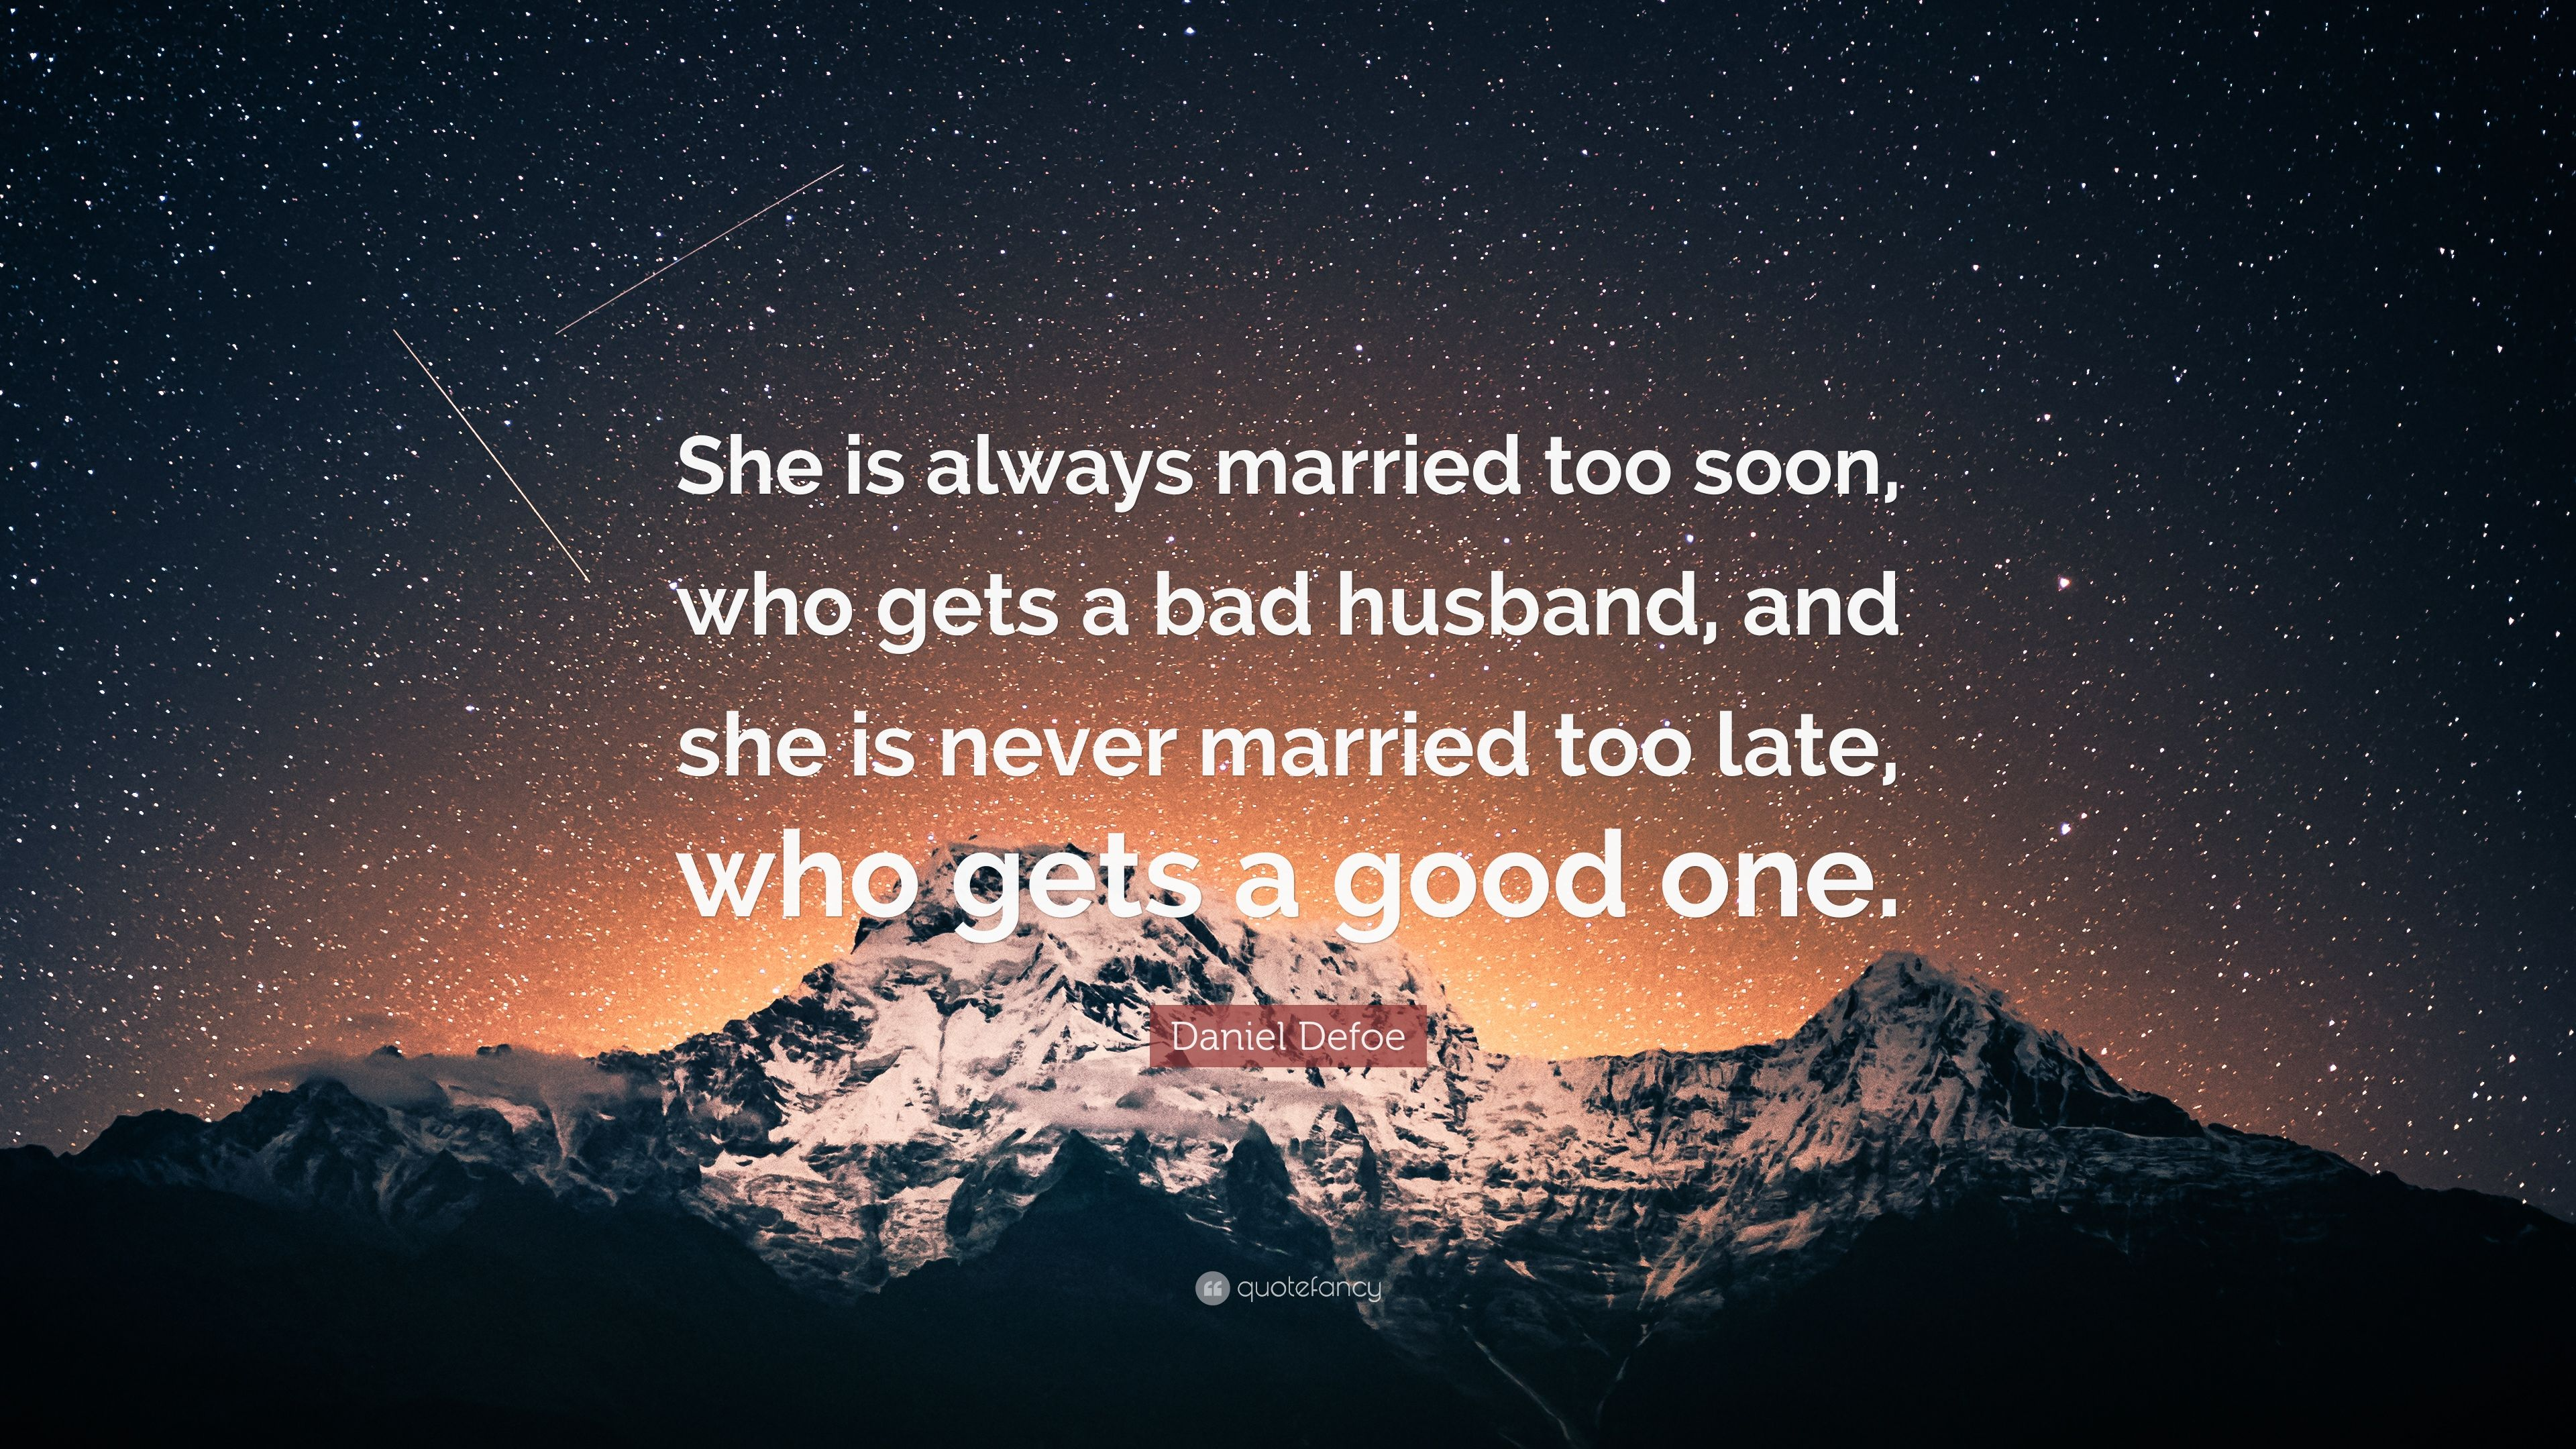 Daniel Defoe Quote She Is Always Married Too Soon Who Gets A Bad Husband And She Is Never Married Too Late Who Gets A Good One 6 Wallpapers Quotefancy